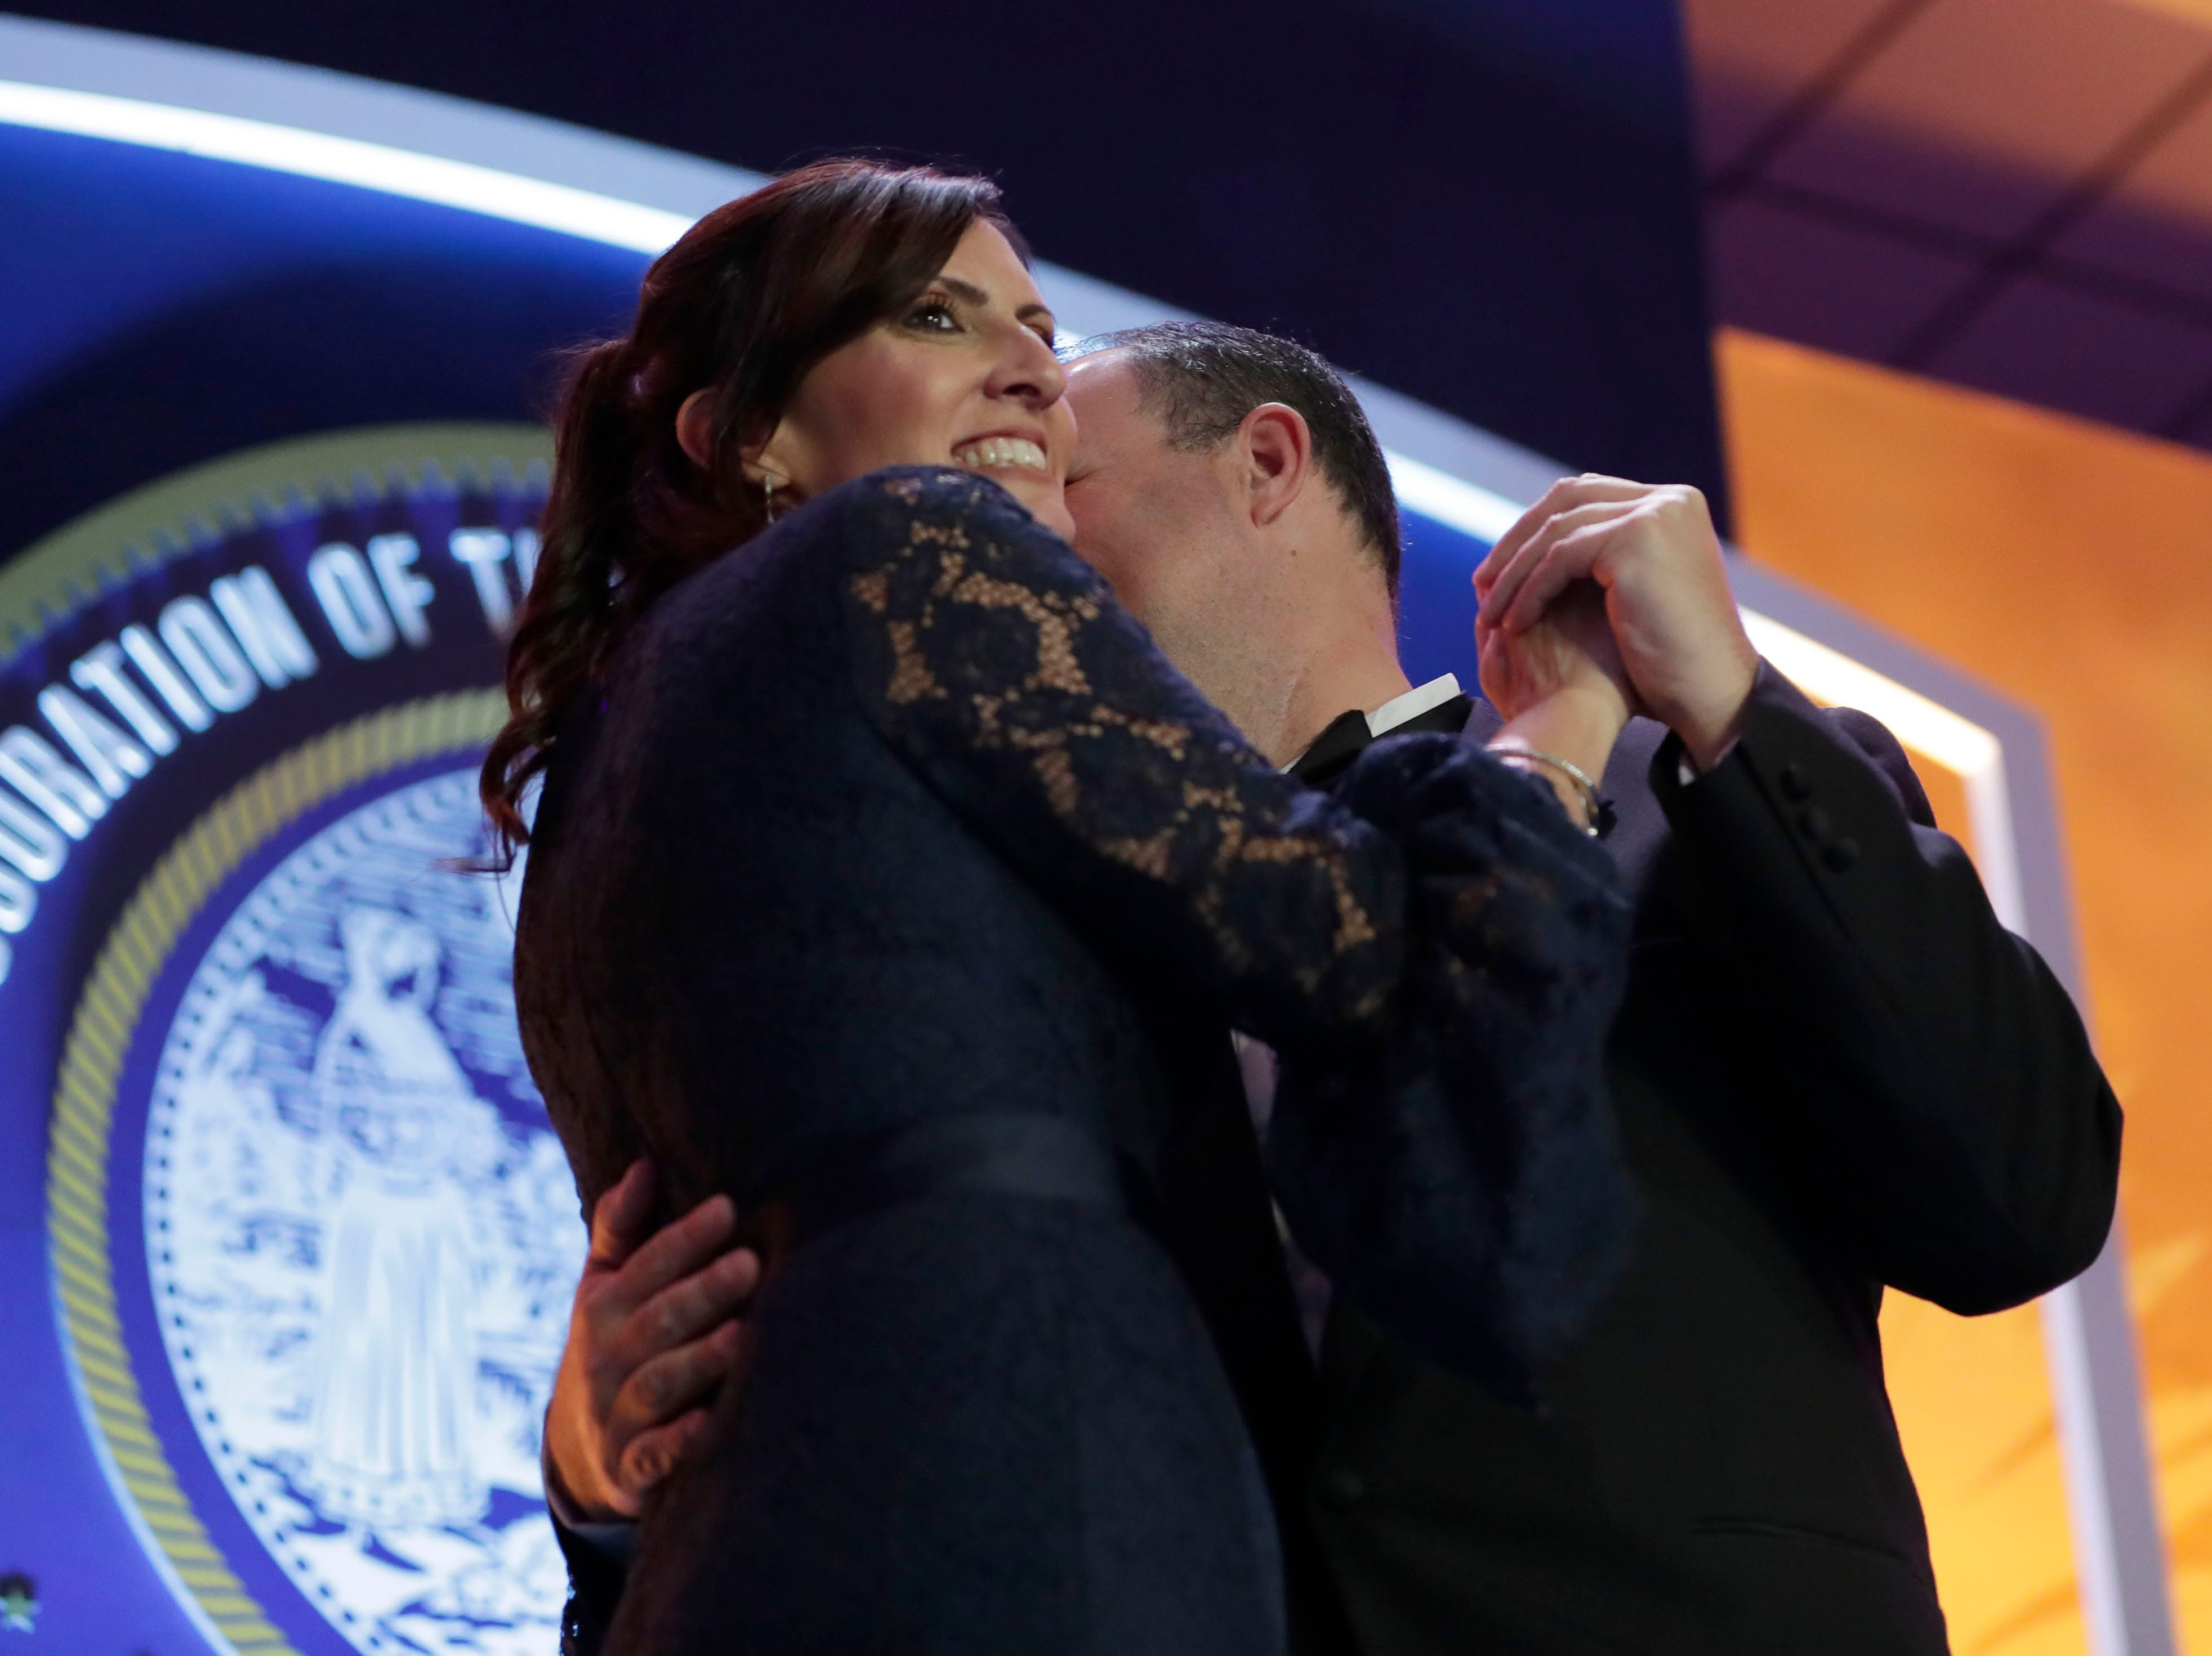 Hundreds of guests from all over Florida attend Florida's 46th Governor's Inaugural Ball at the Tucker Civic Center, Tuesday, Jan. 8, 2019. Lt. Gov. Jeanette Nunez dances on stage with her husband, Adrian Nunez.